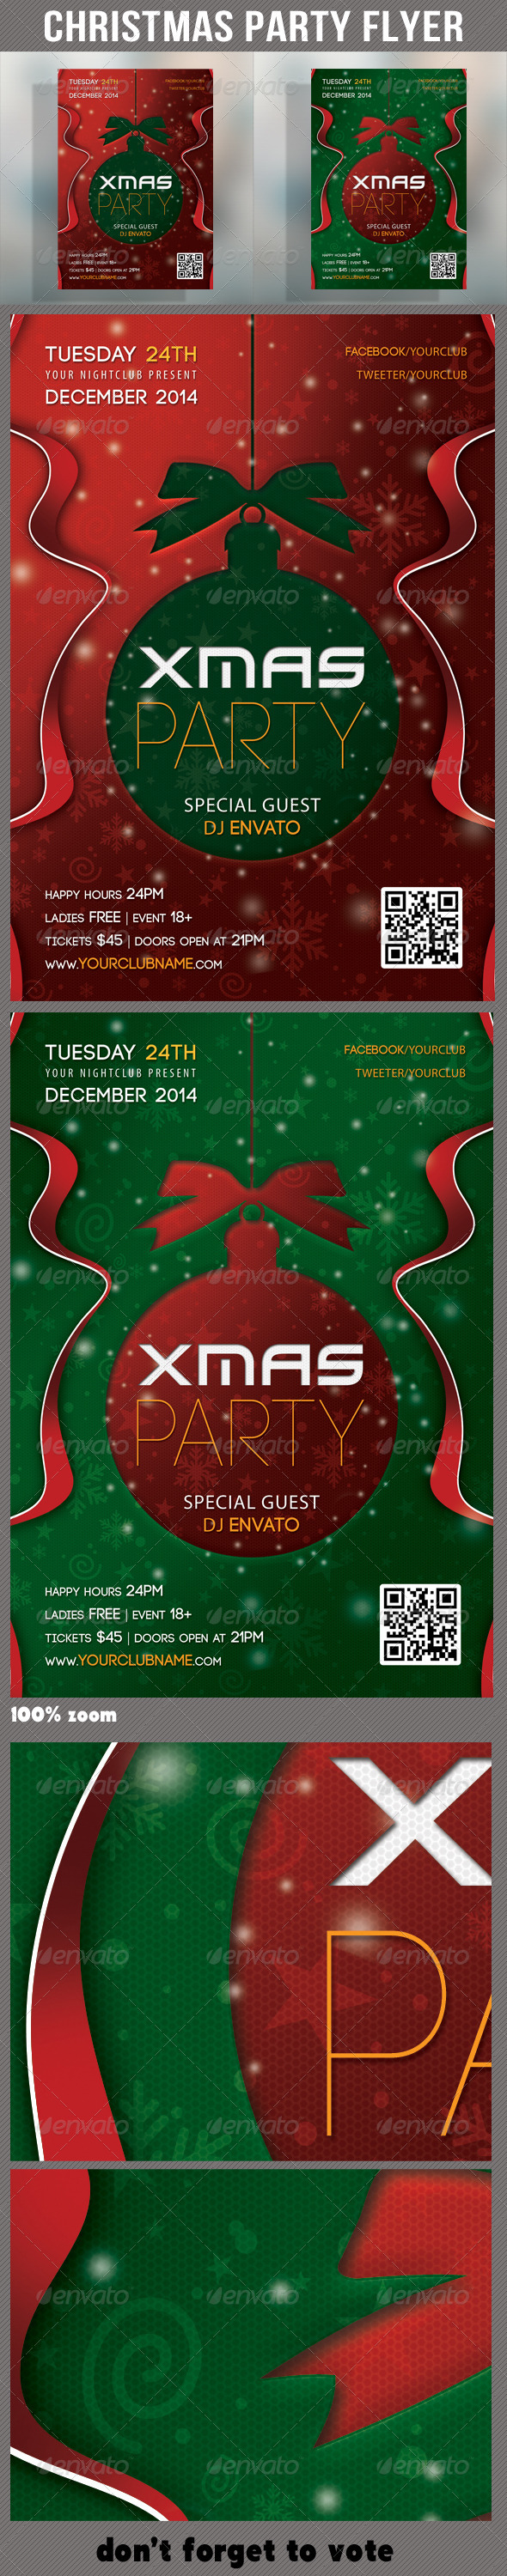 Merry Christmas Party Flyer 02 - Holidays Events